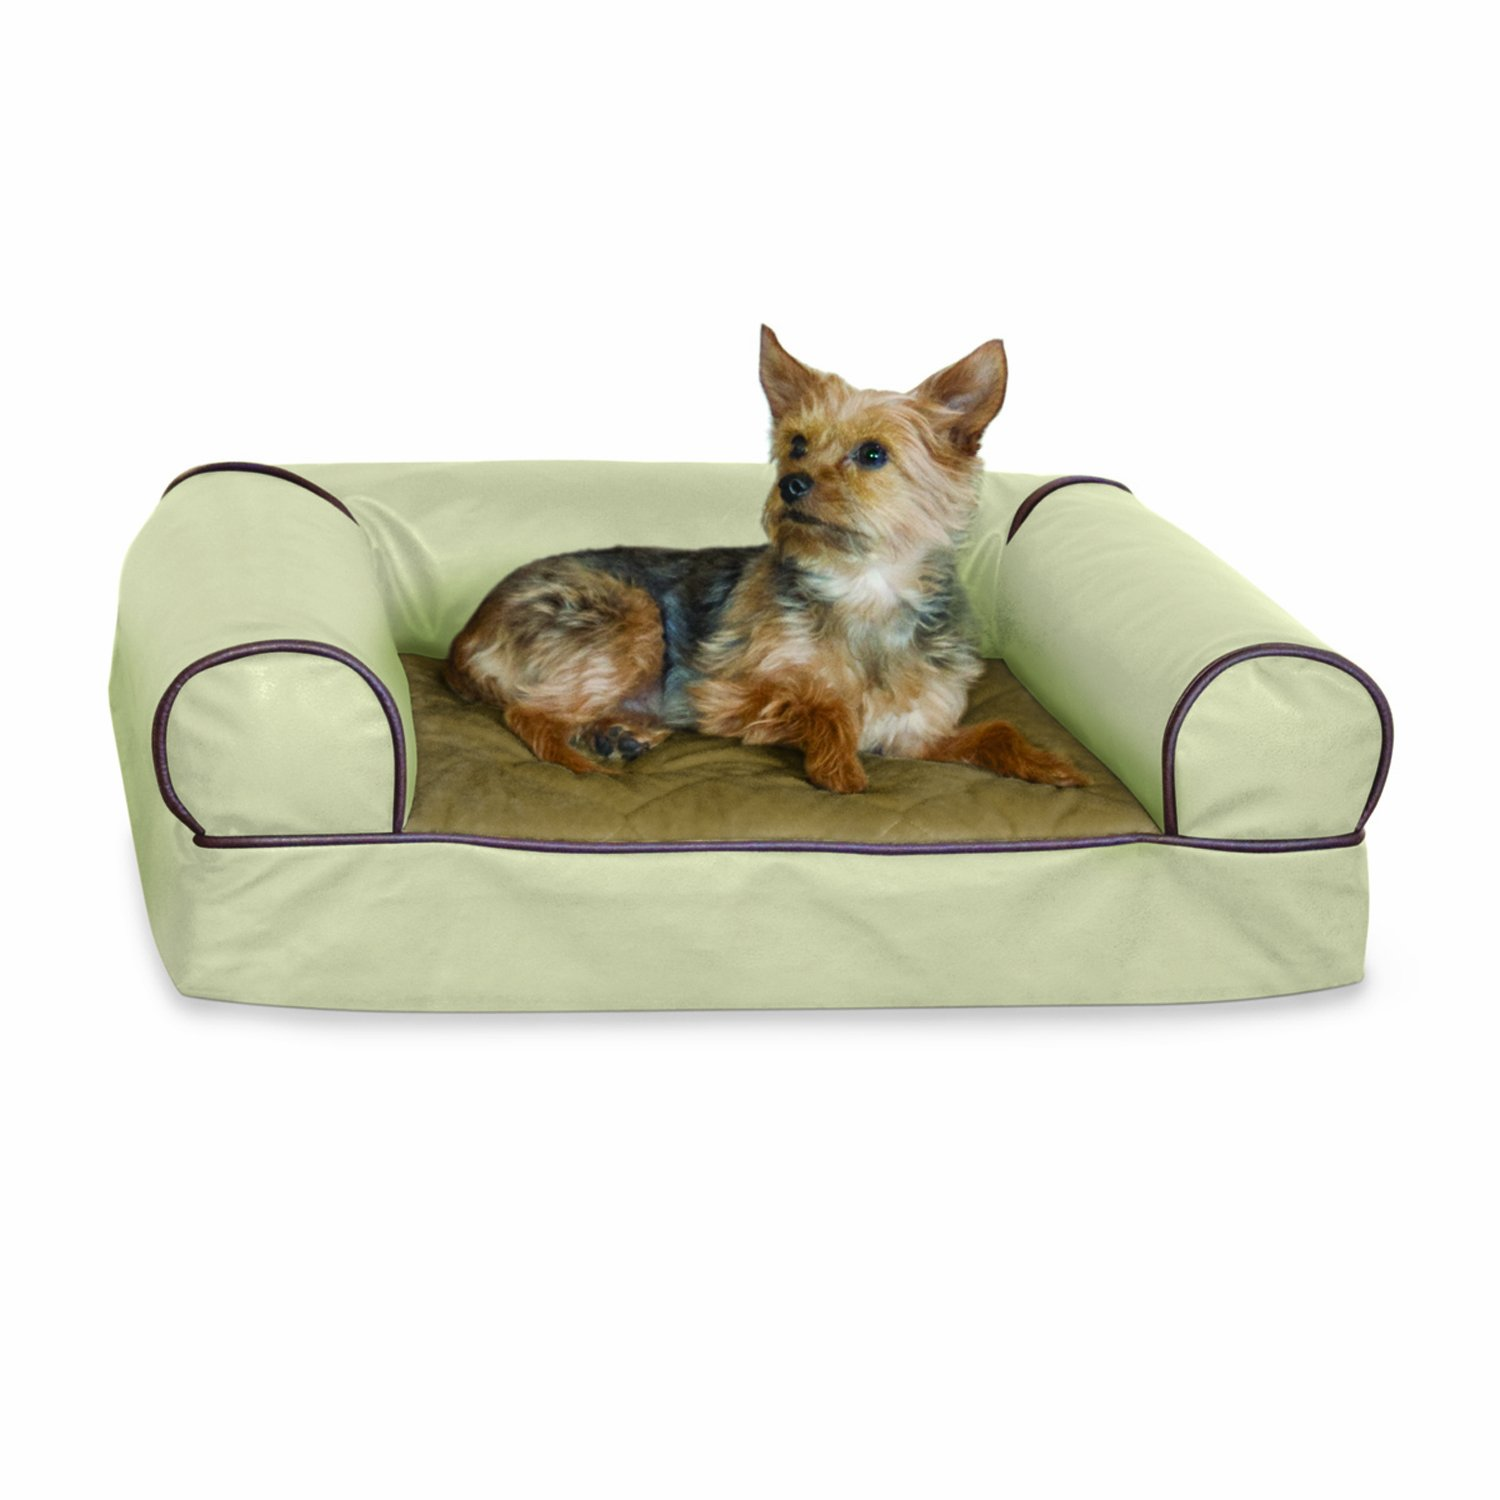 Dog beds that look like couches -  Bed Sofacheck Price K H Memory Large Foam Cozy Pet Sofa